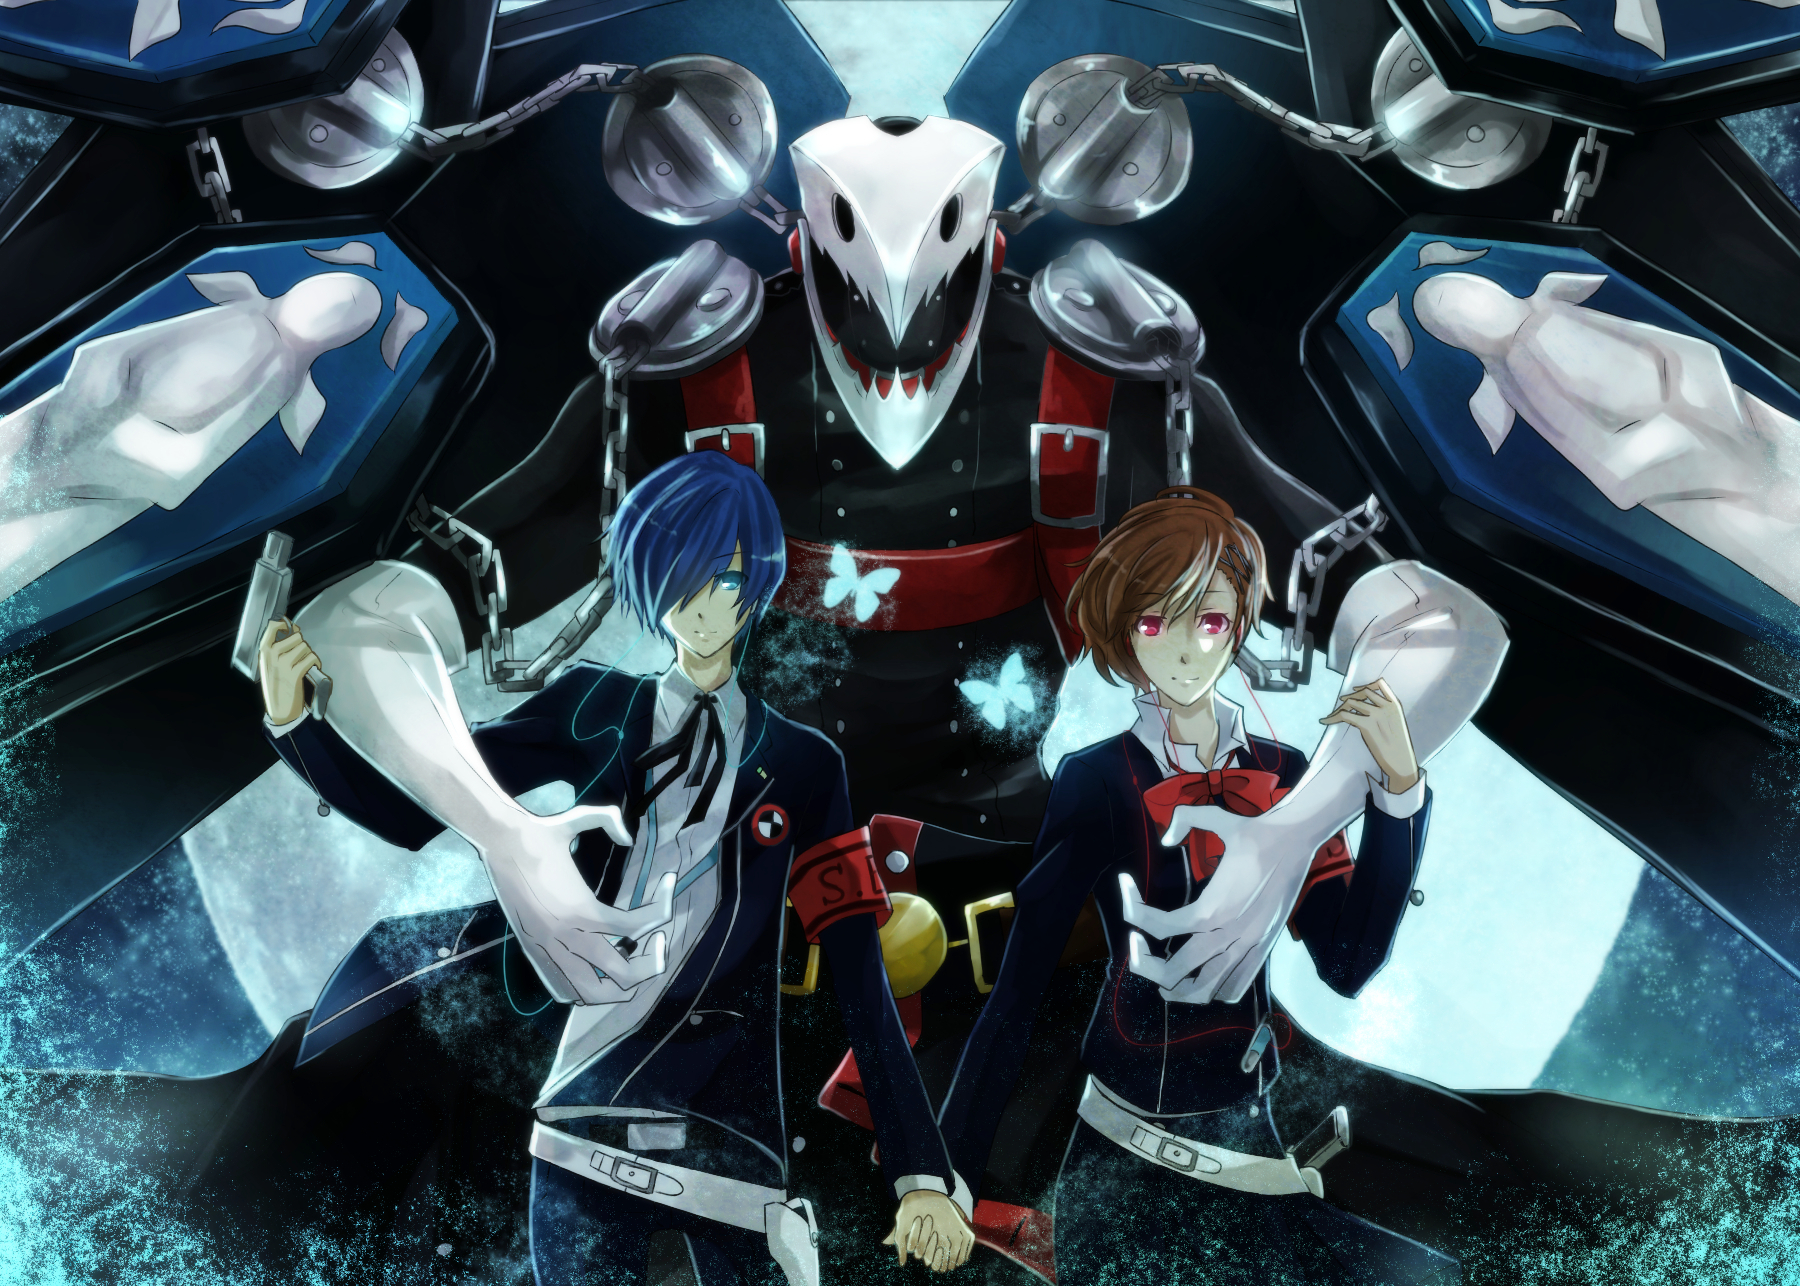 1800x1286 > Persona 3 Wallpapers